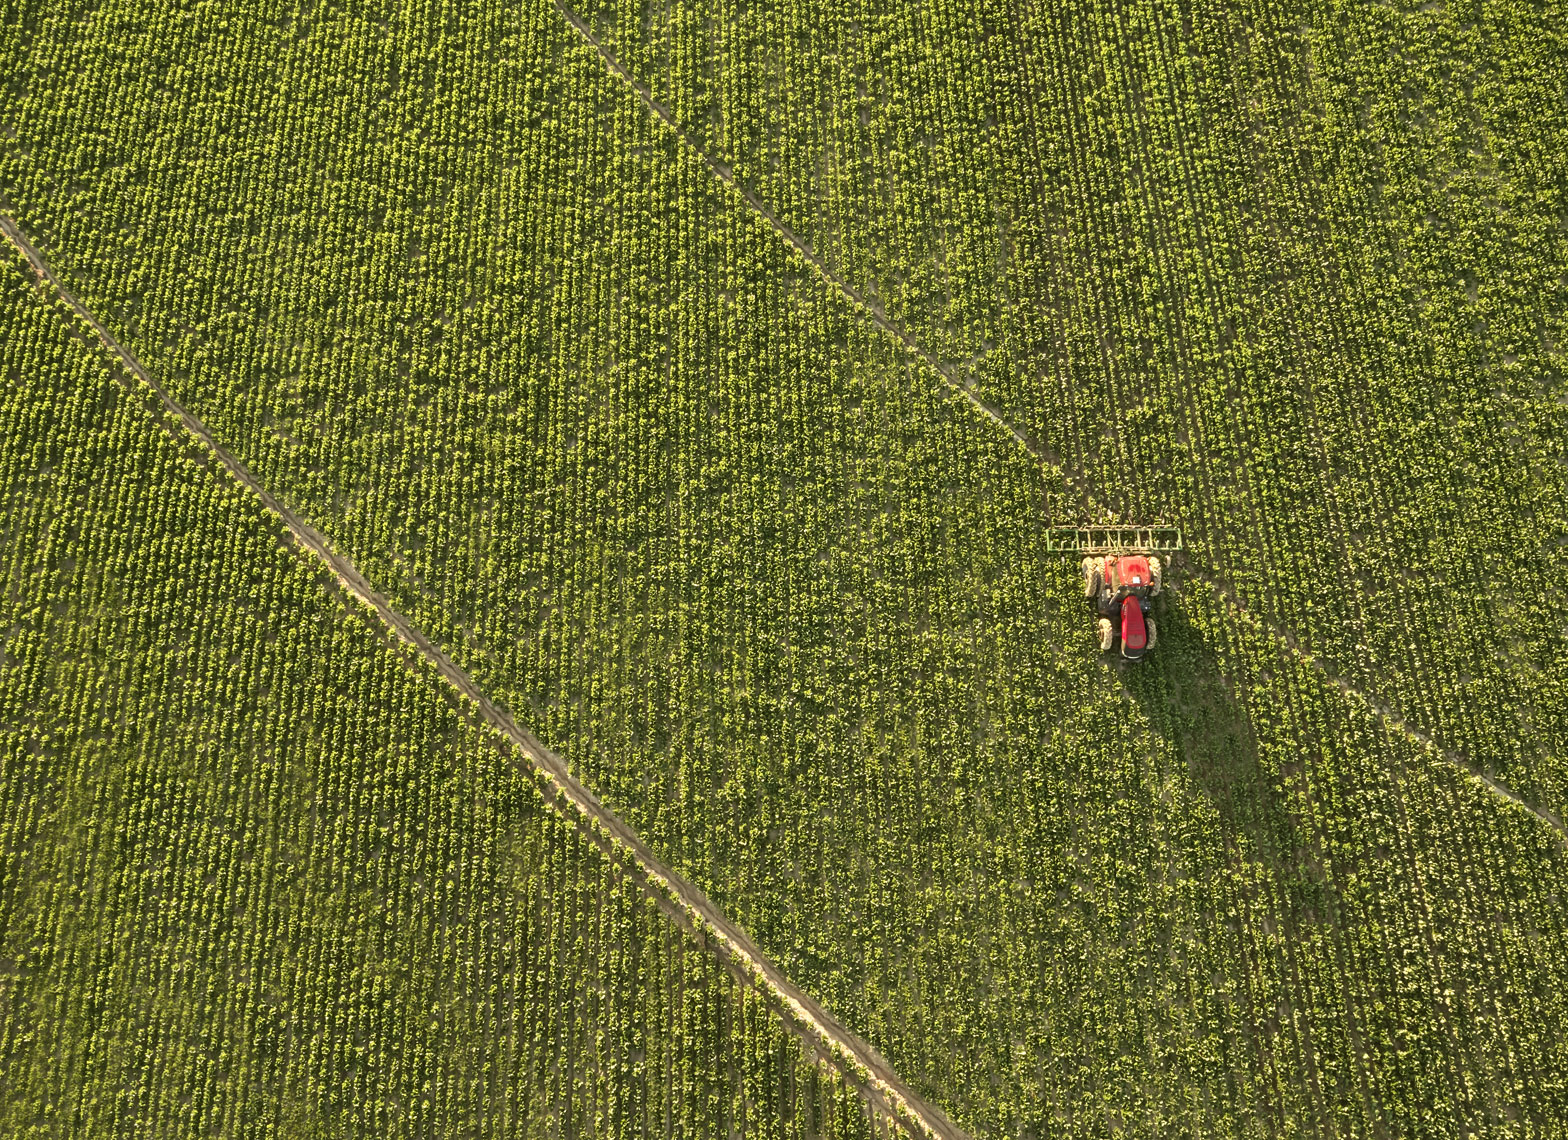 Red tractor/field/pestiside/arial drone photography